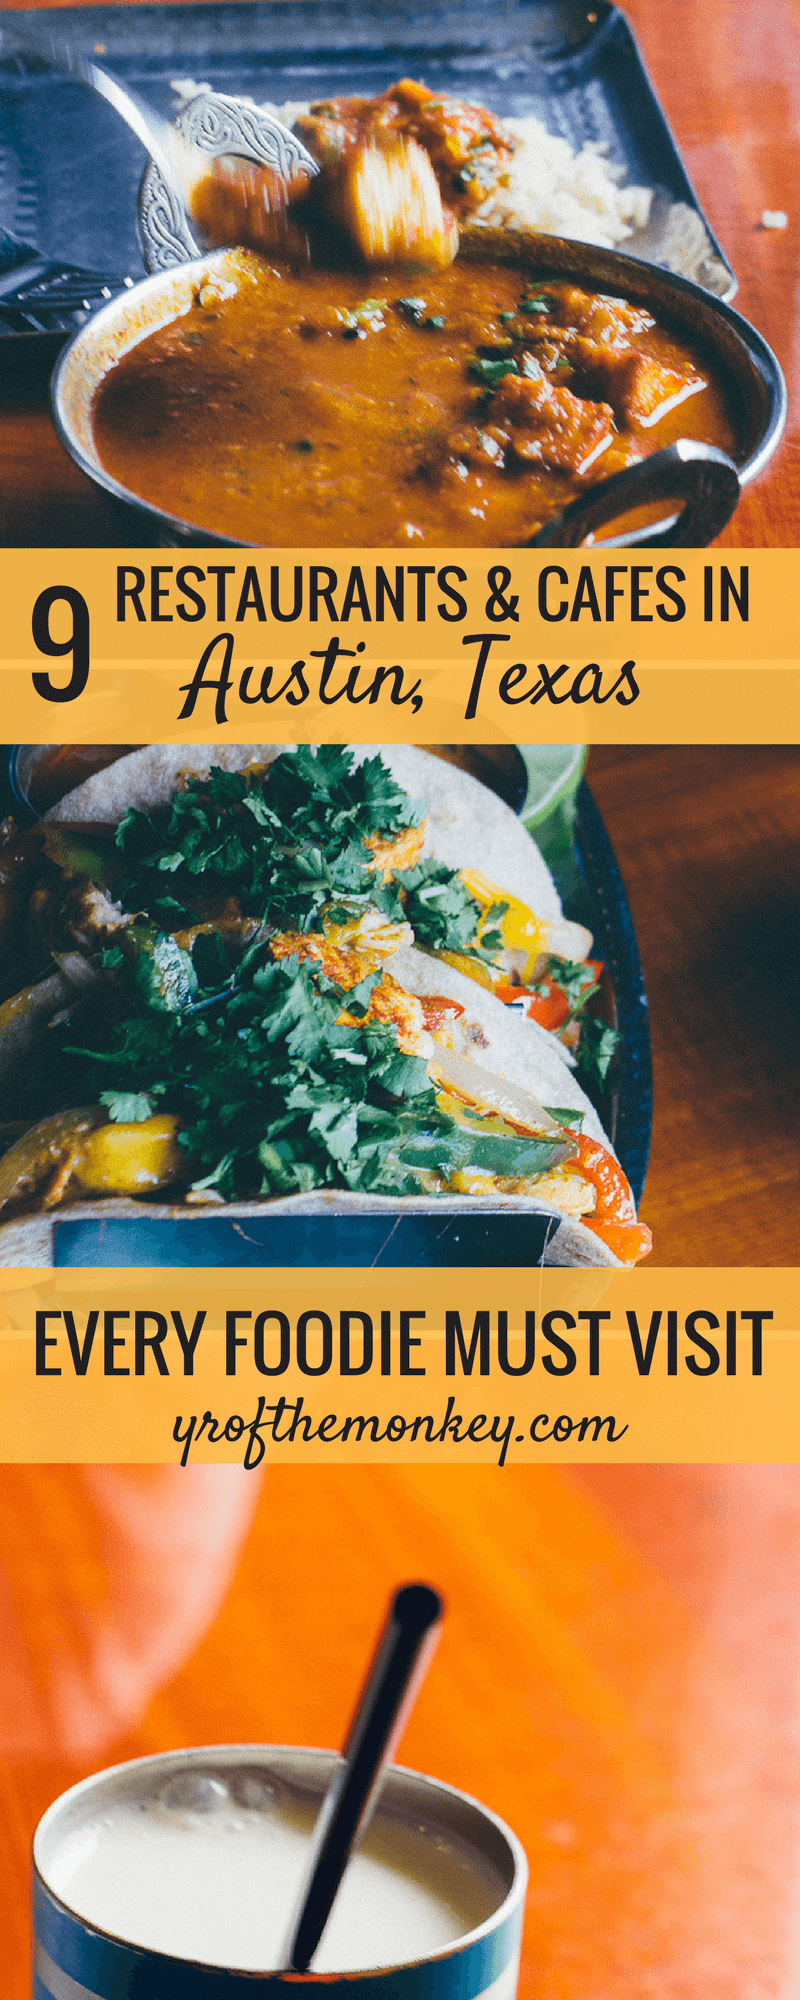 This is an alternate Austin Texas USA dining guide which goes beyond the barbecue and showcases 9 diverse and best restaurants in Austin. This Austin food guide includes vegetarian and ethnic options and tells you where to eat in Austin for breakfast, lunch and dinner. Don't miss reading this culinary Austin guide if you are a foodie. Pin it to your USA board for a lipsmacking food tour!